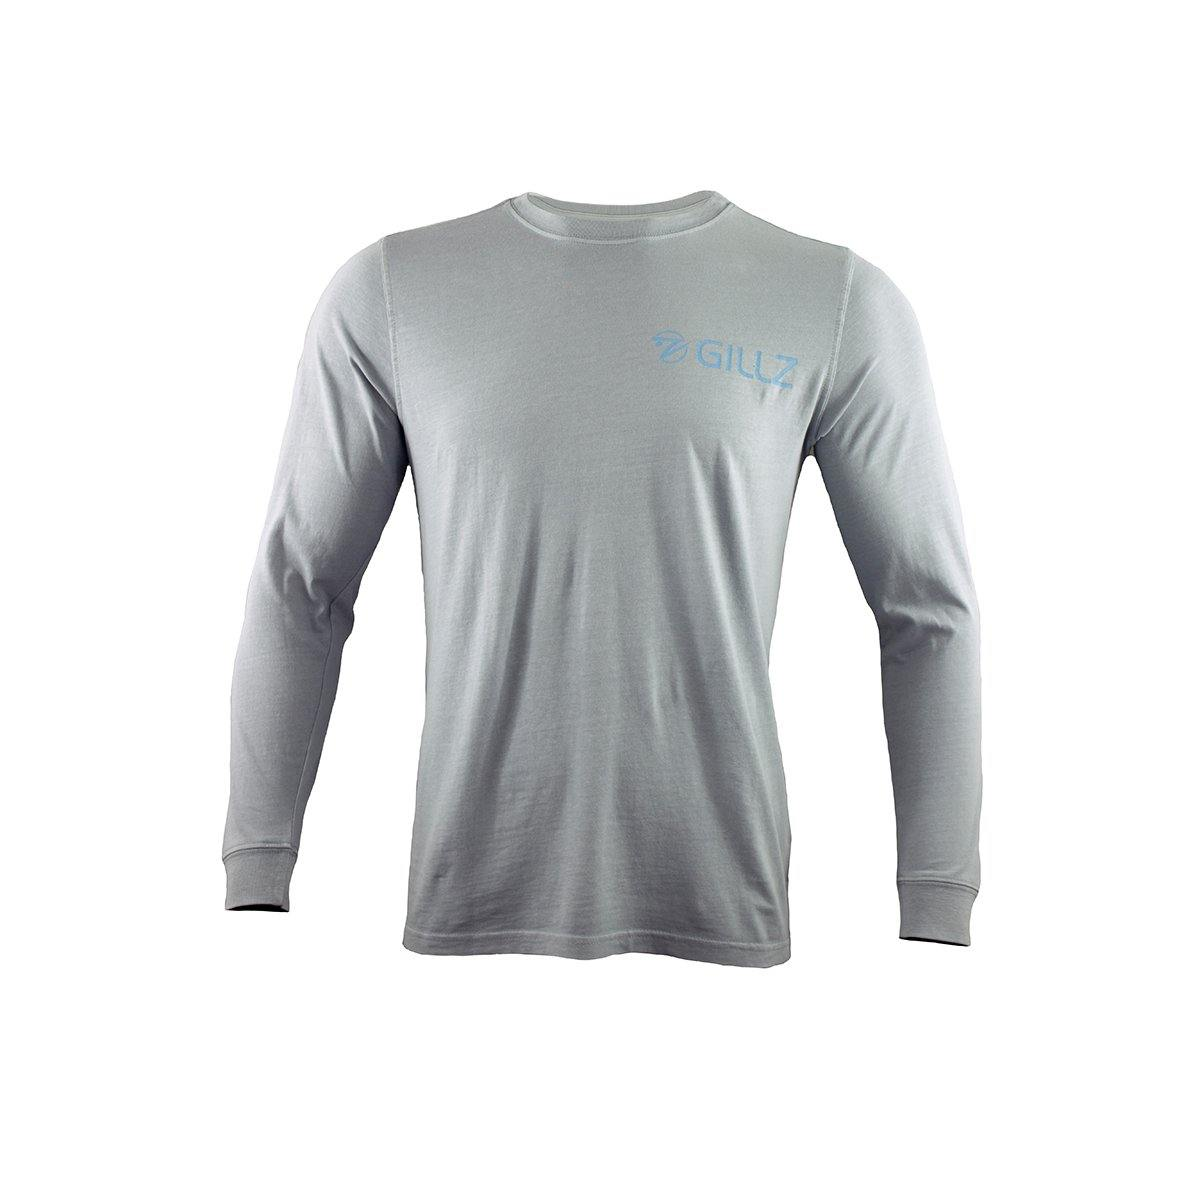 "Gillz Men's Long Sleeve Tee ""Fishhead Logo"" - High Rise Grey"